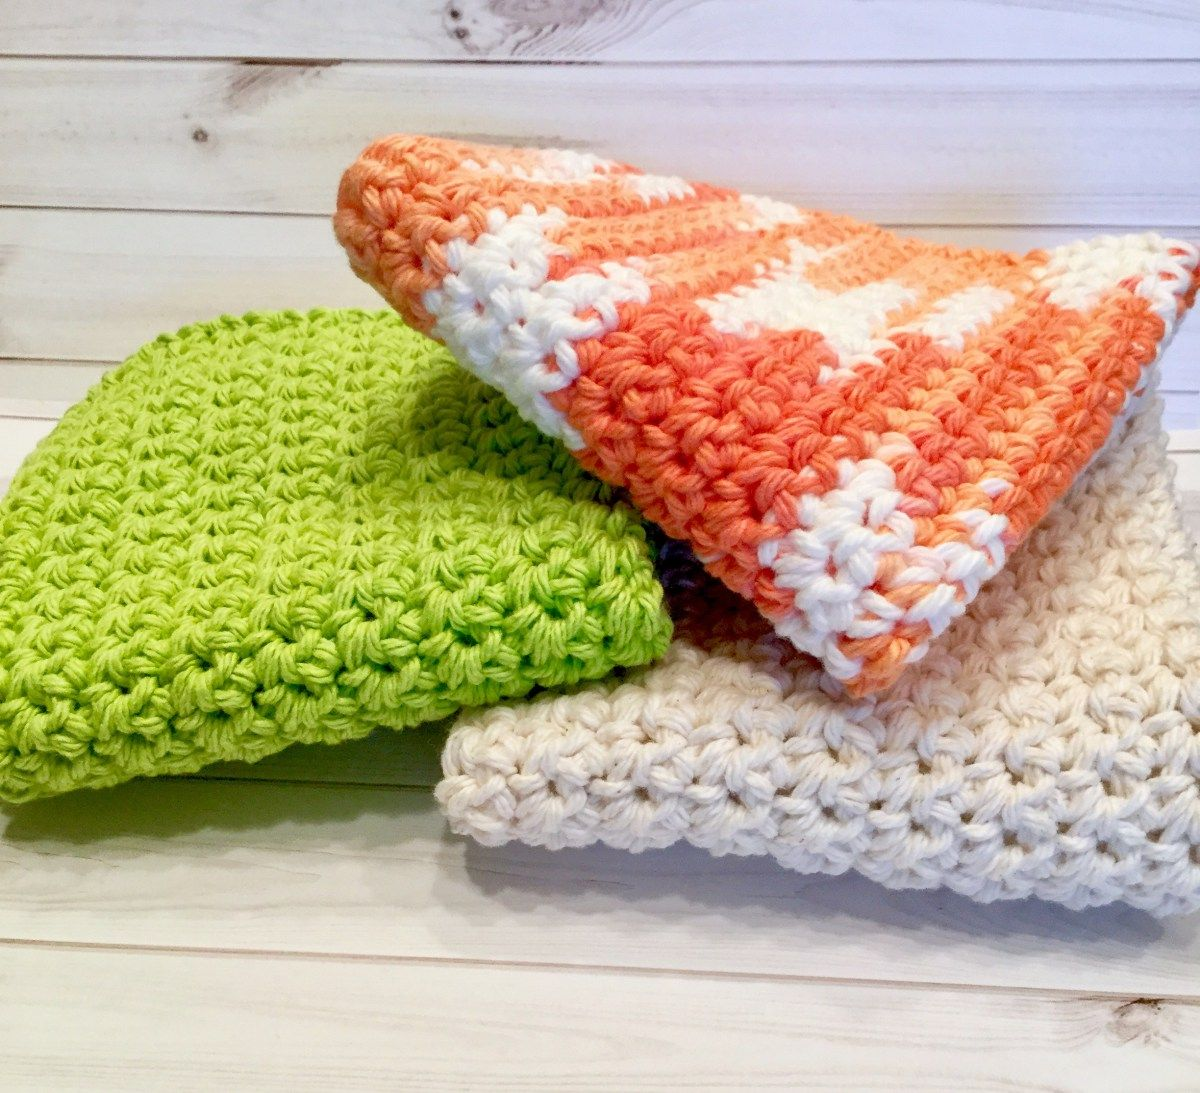 Crochet Washcloth Easy Free Pattern For Beginners My Hobby Is